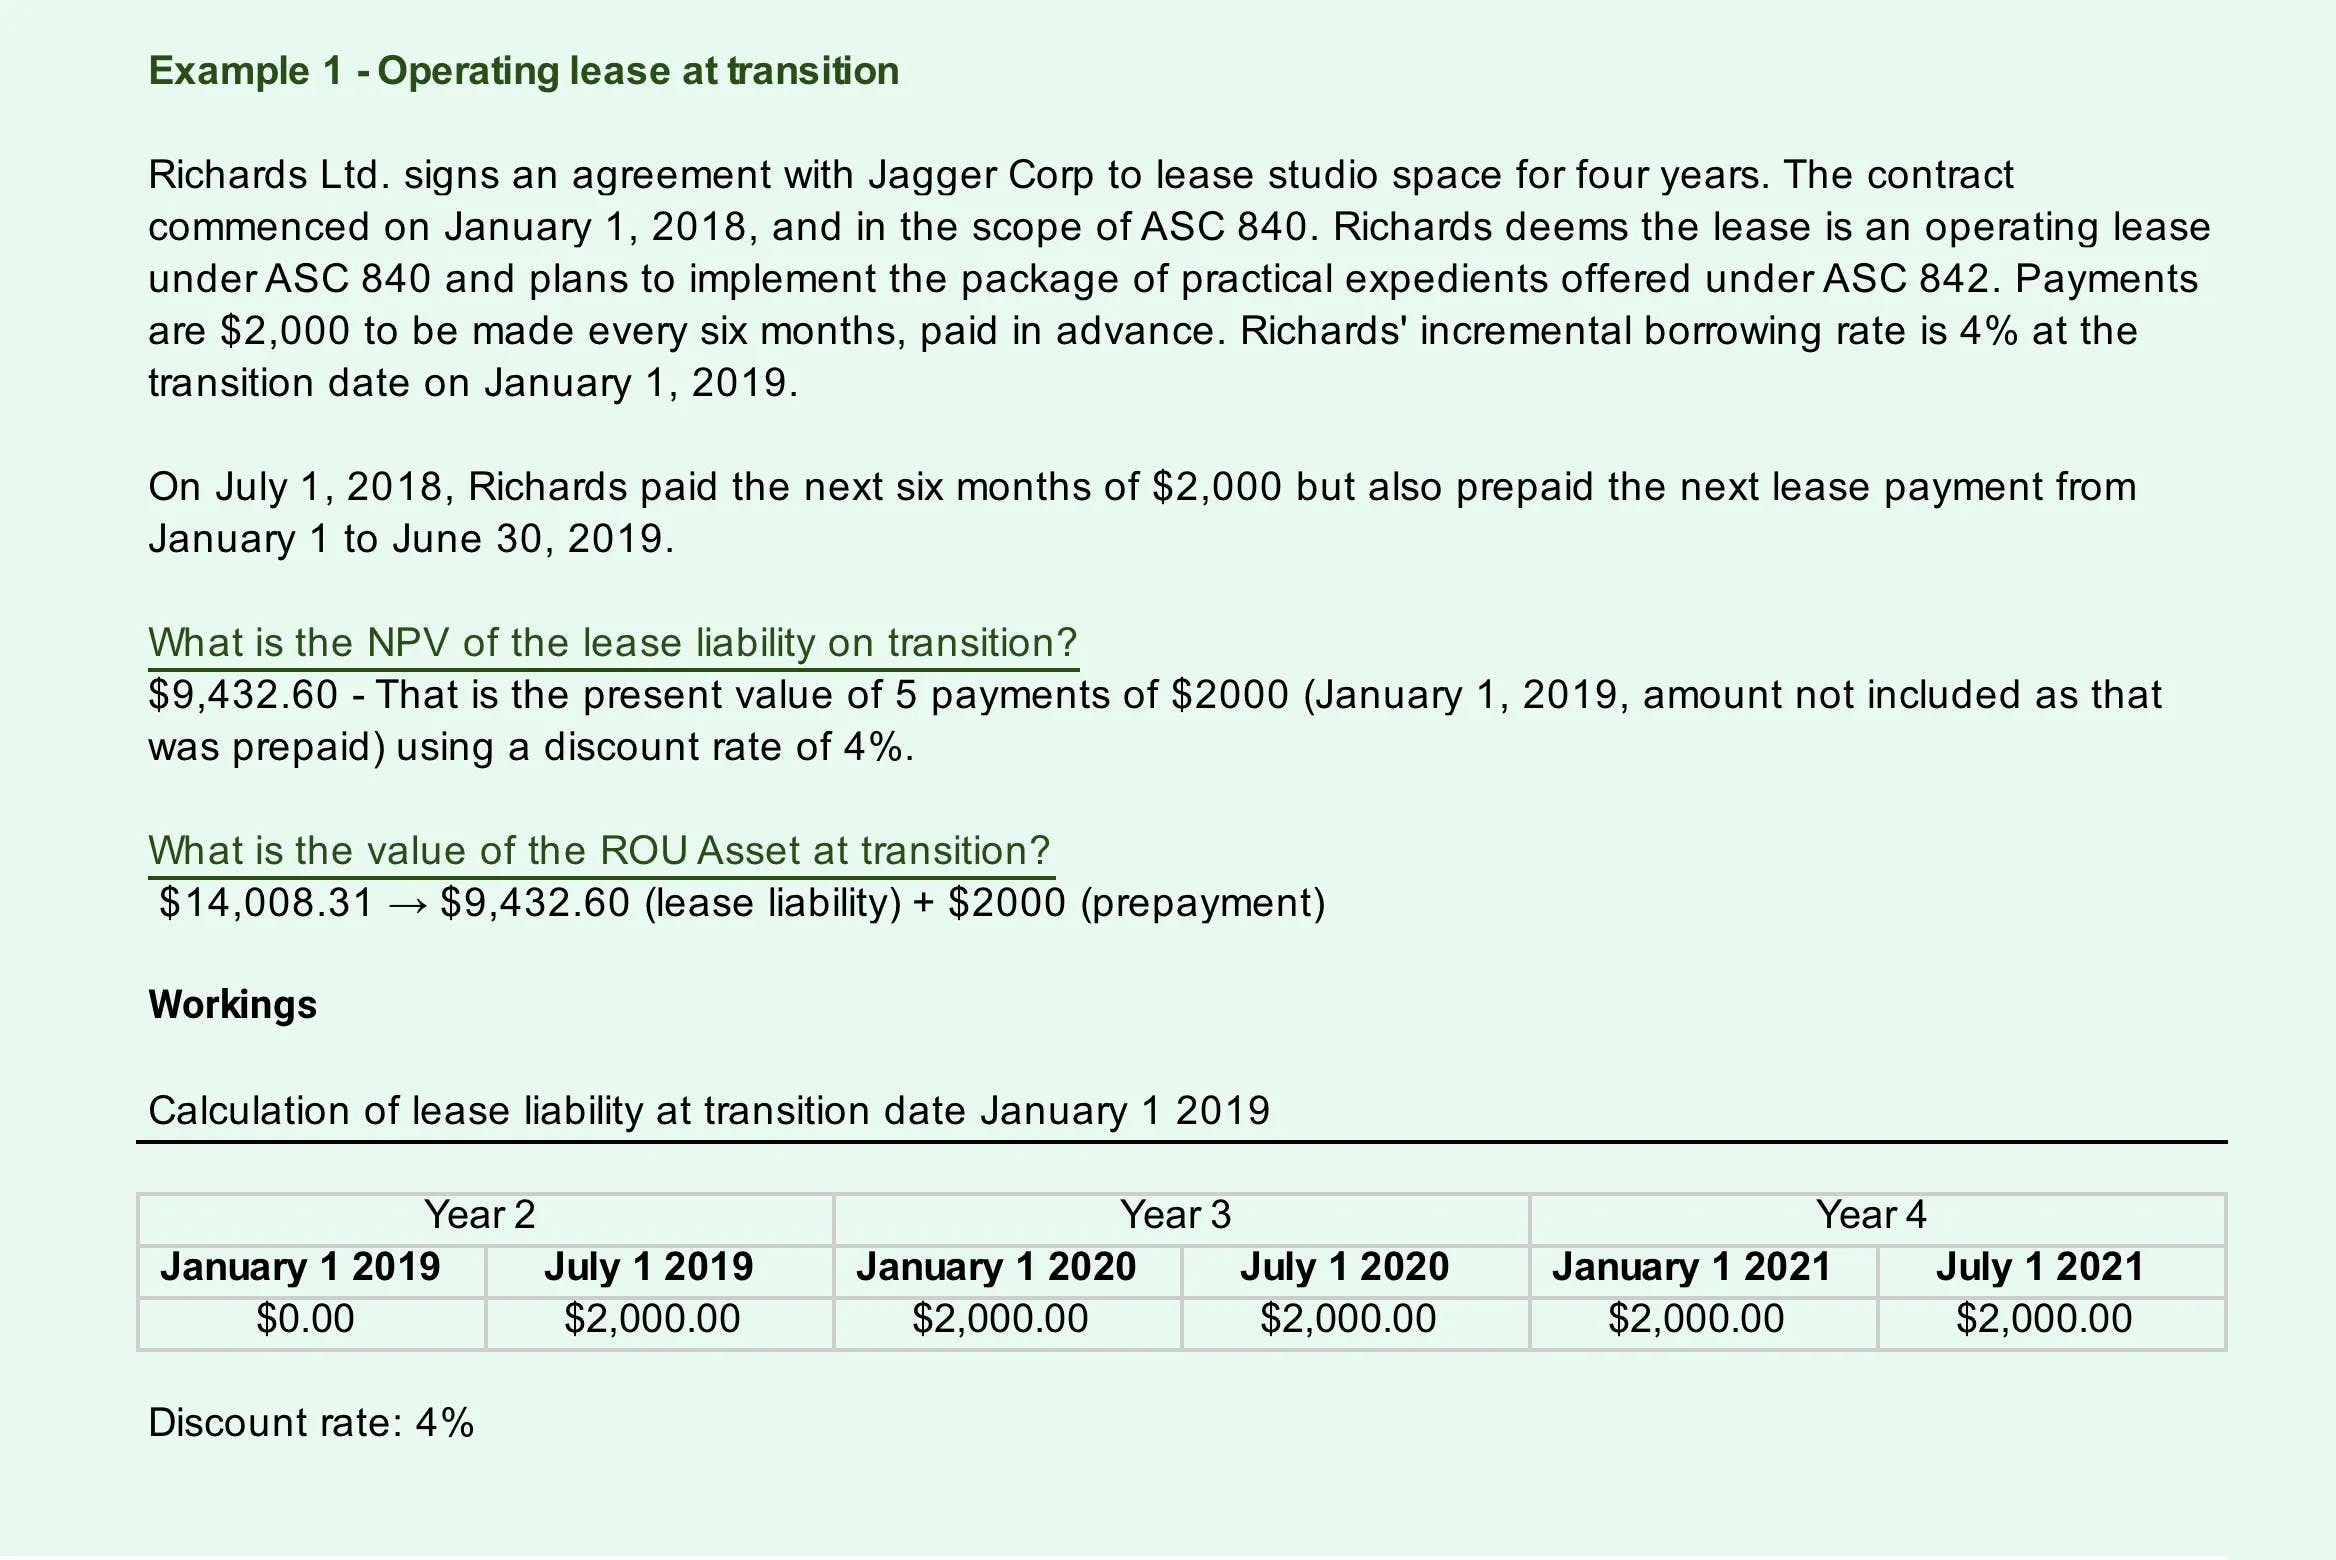 Example of how to calculate a operating lease at transition under ASC 842